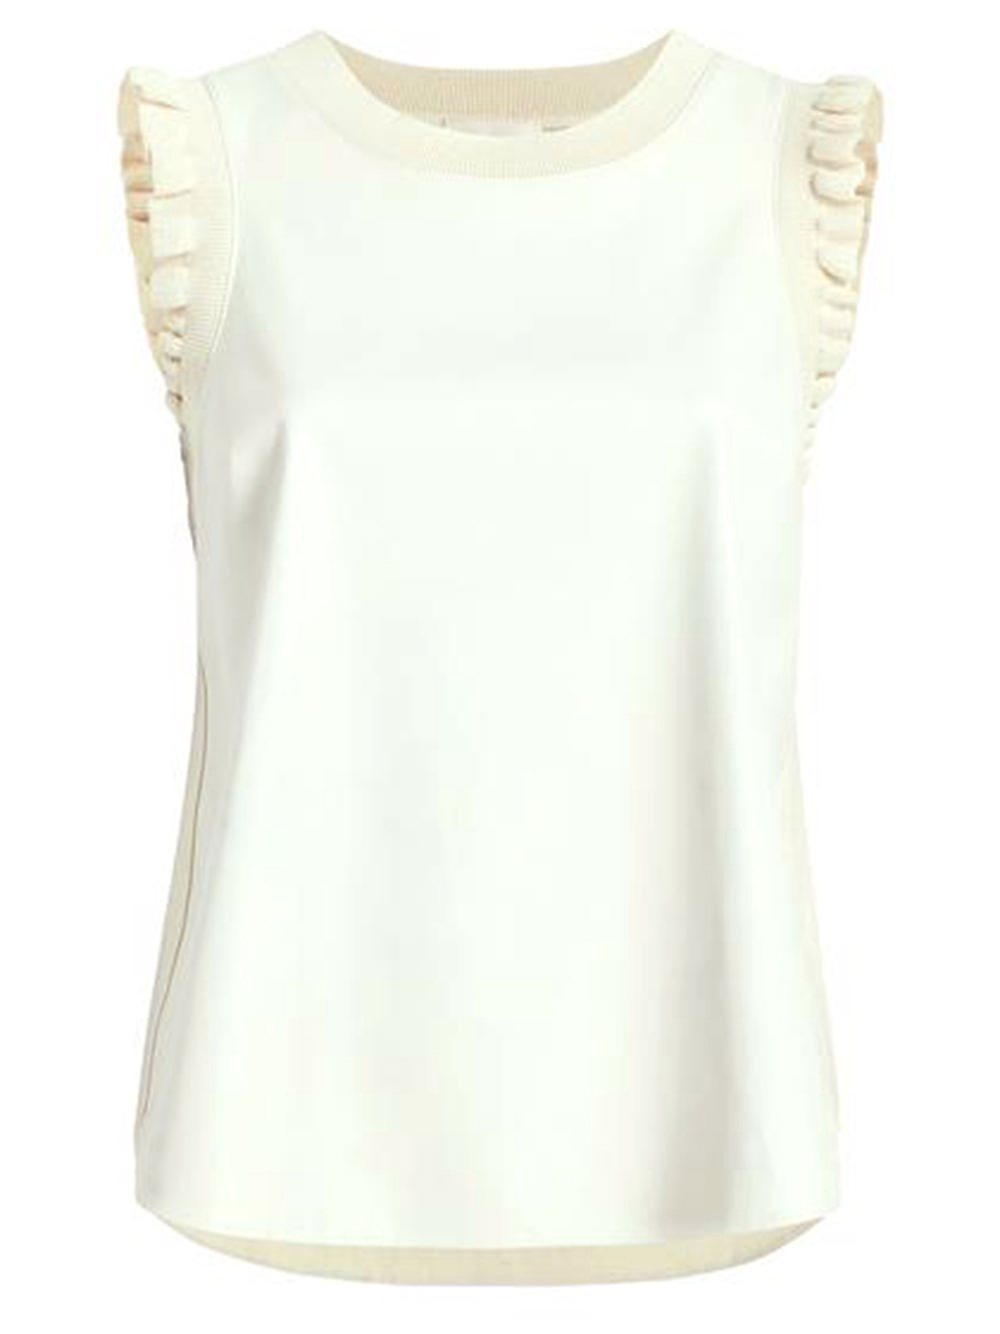 Lenore Faux Leather Top Item # ZK3564370Z